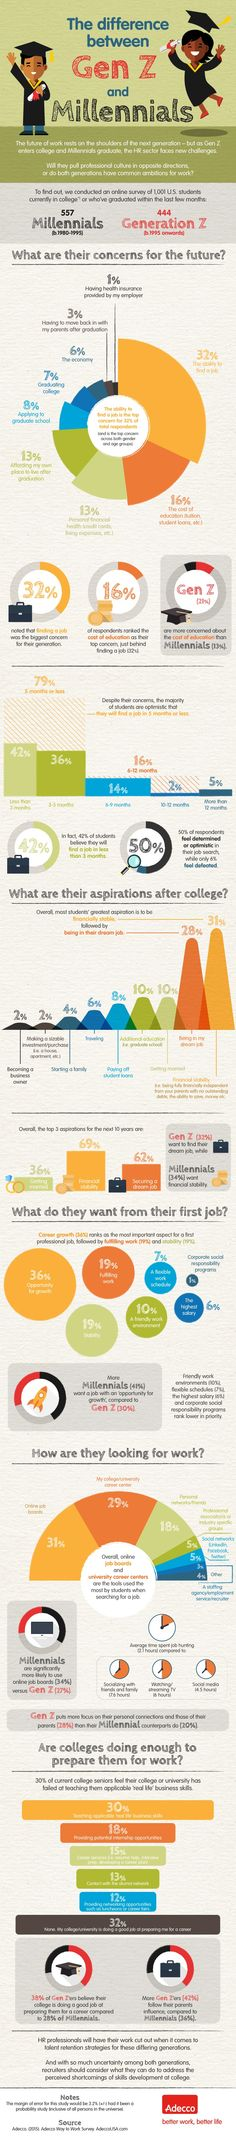 How Will Generation Z Differ From Millennials in the Work Force? | Social Media Today